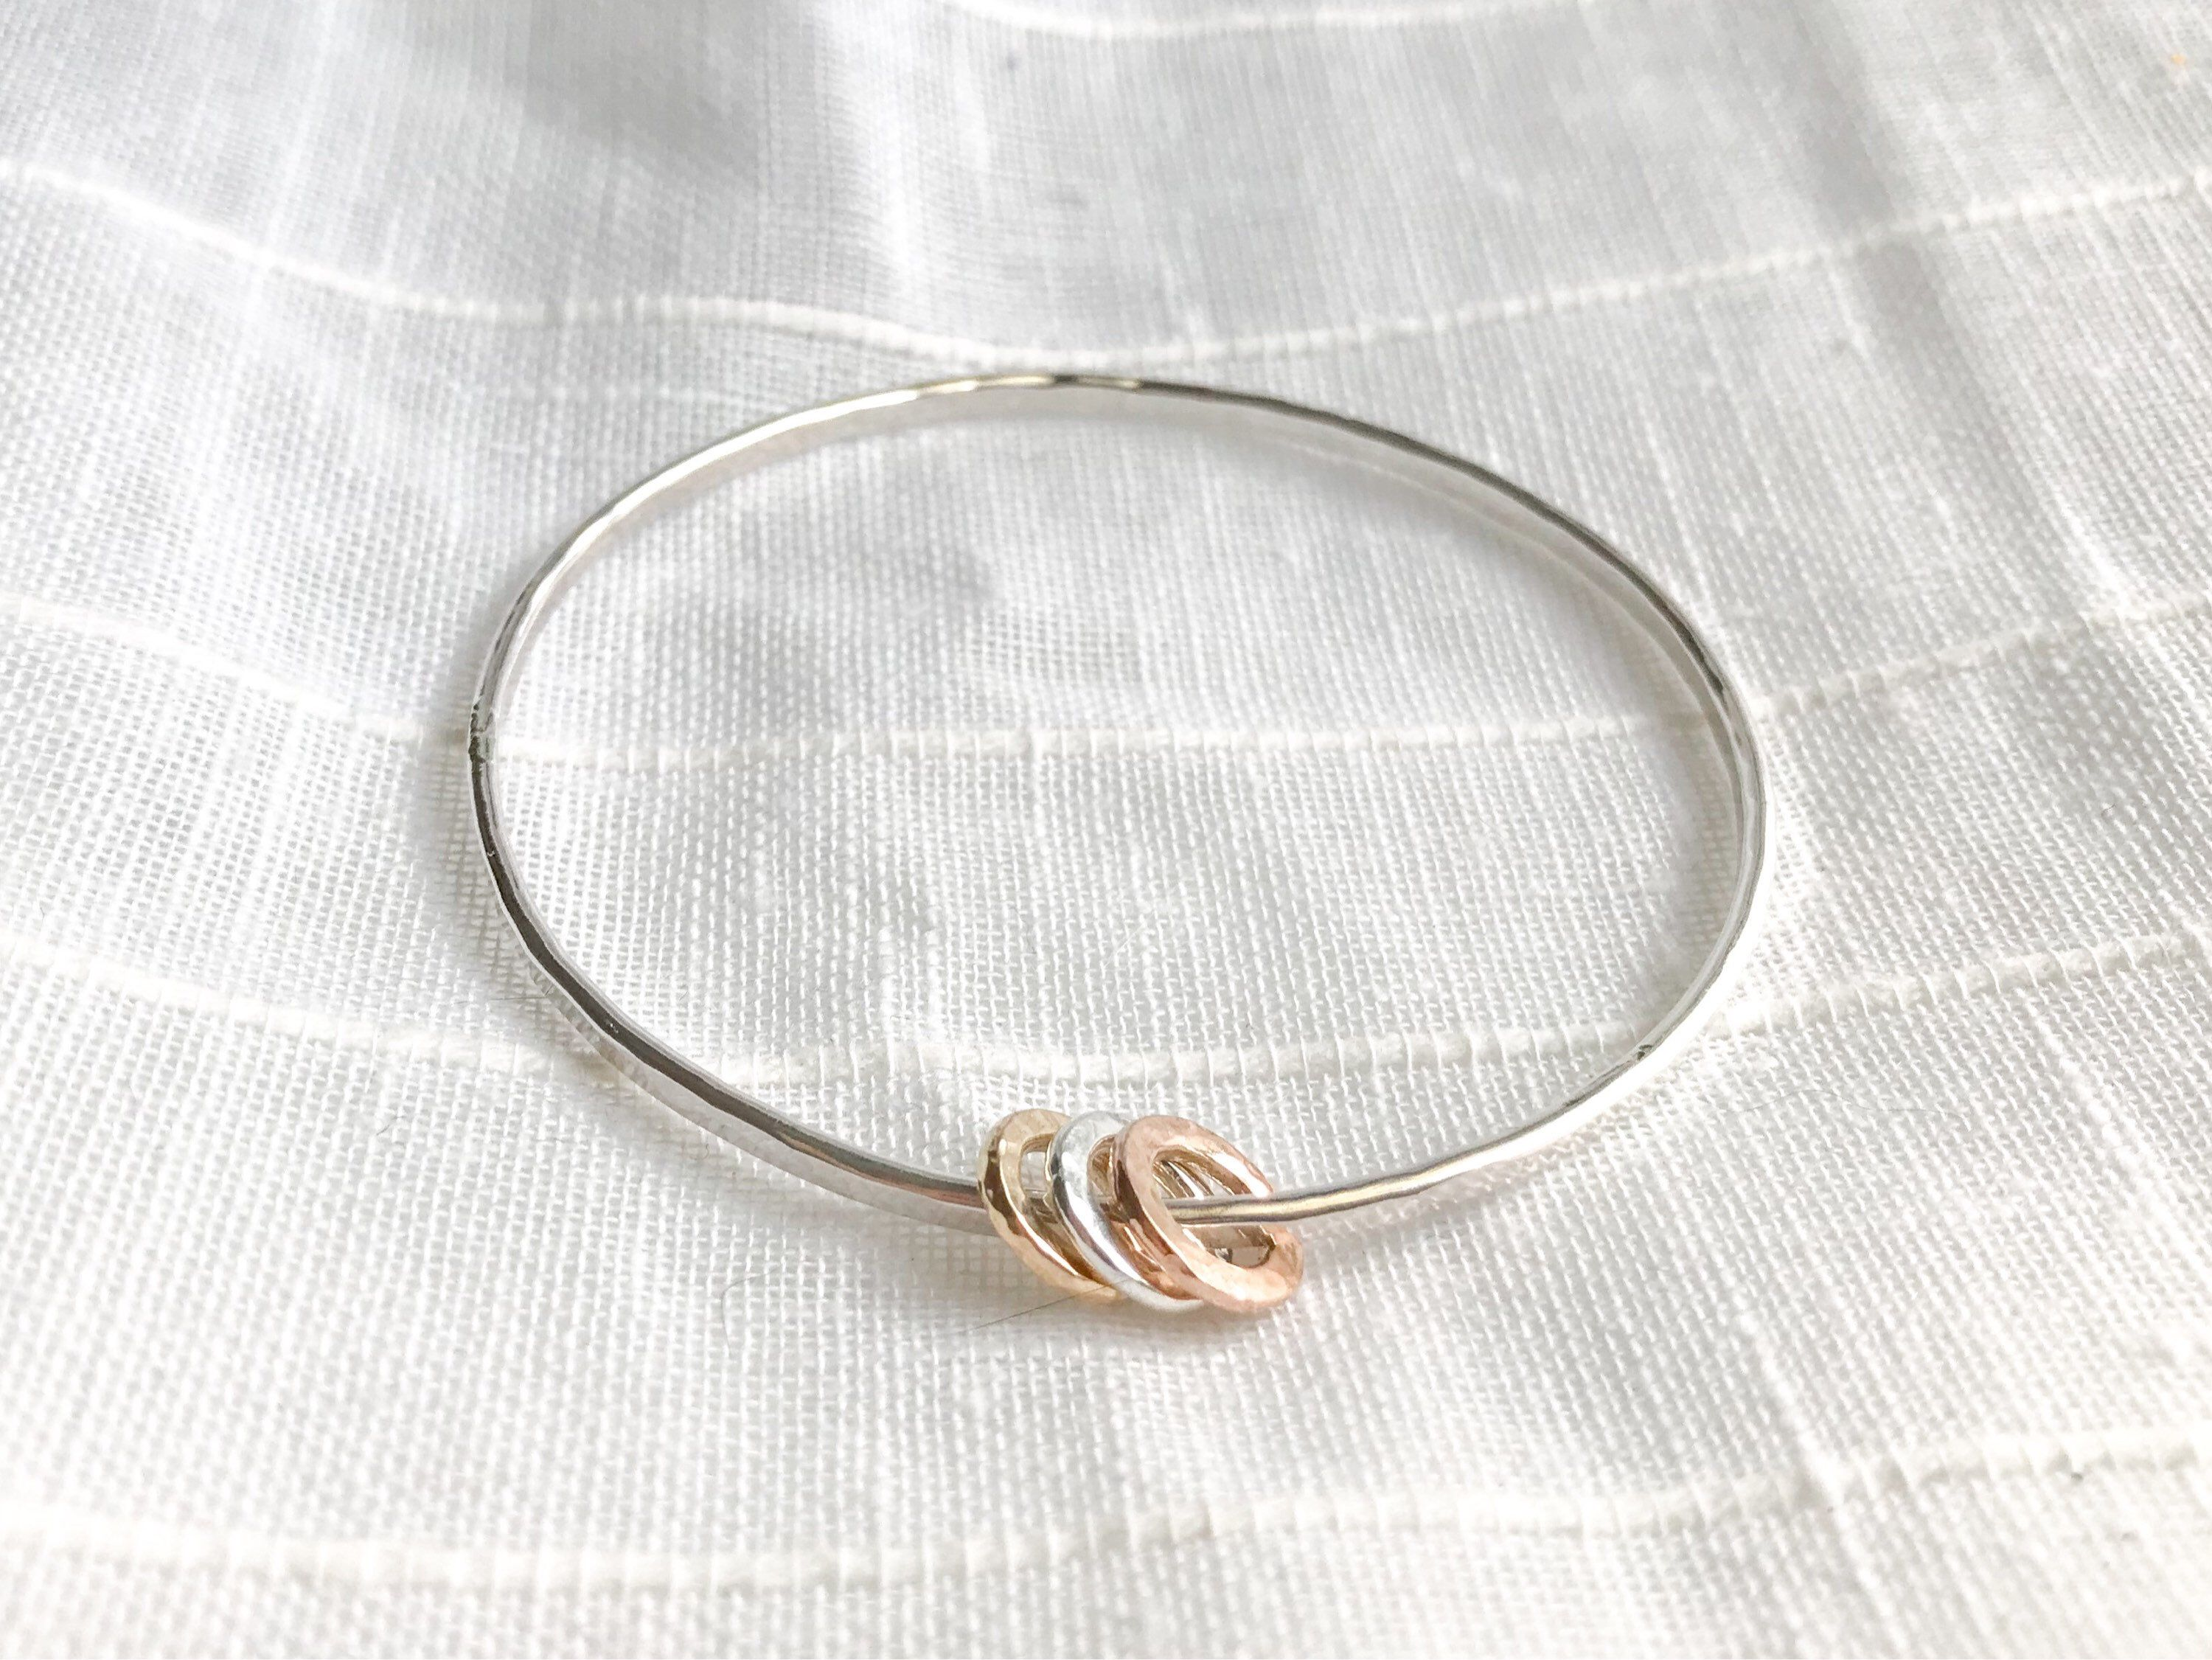 gold bangles small xl xxxl xxl large filled pin sterling silver bangle bracelet bracelets